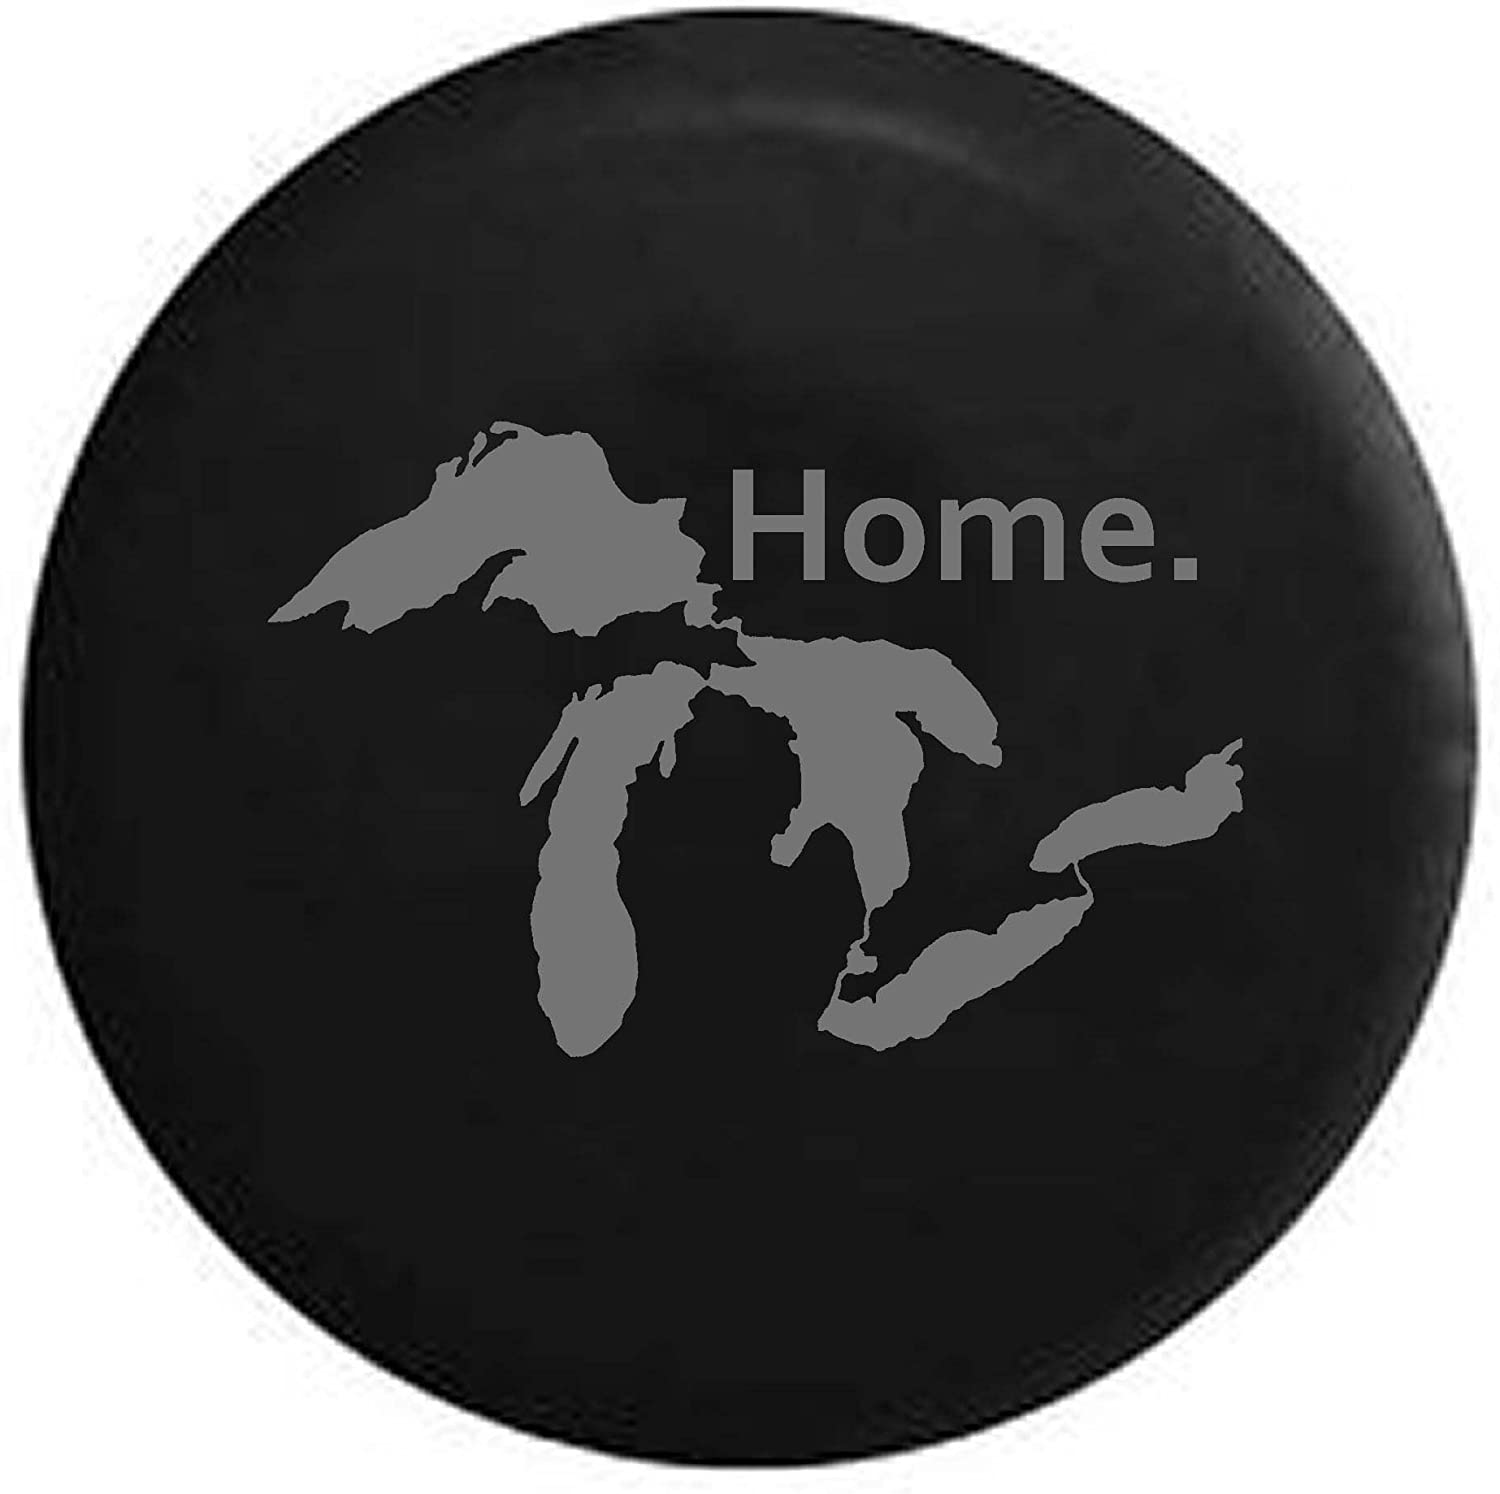 Pike State of Michigan Great Lakes Detroit Home Edition Trailer RV Spare Tire Cover OEM Vinyl Black 29 in